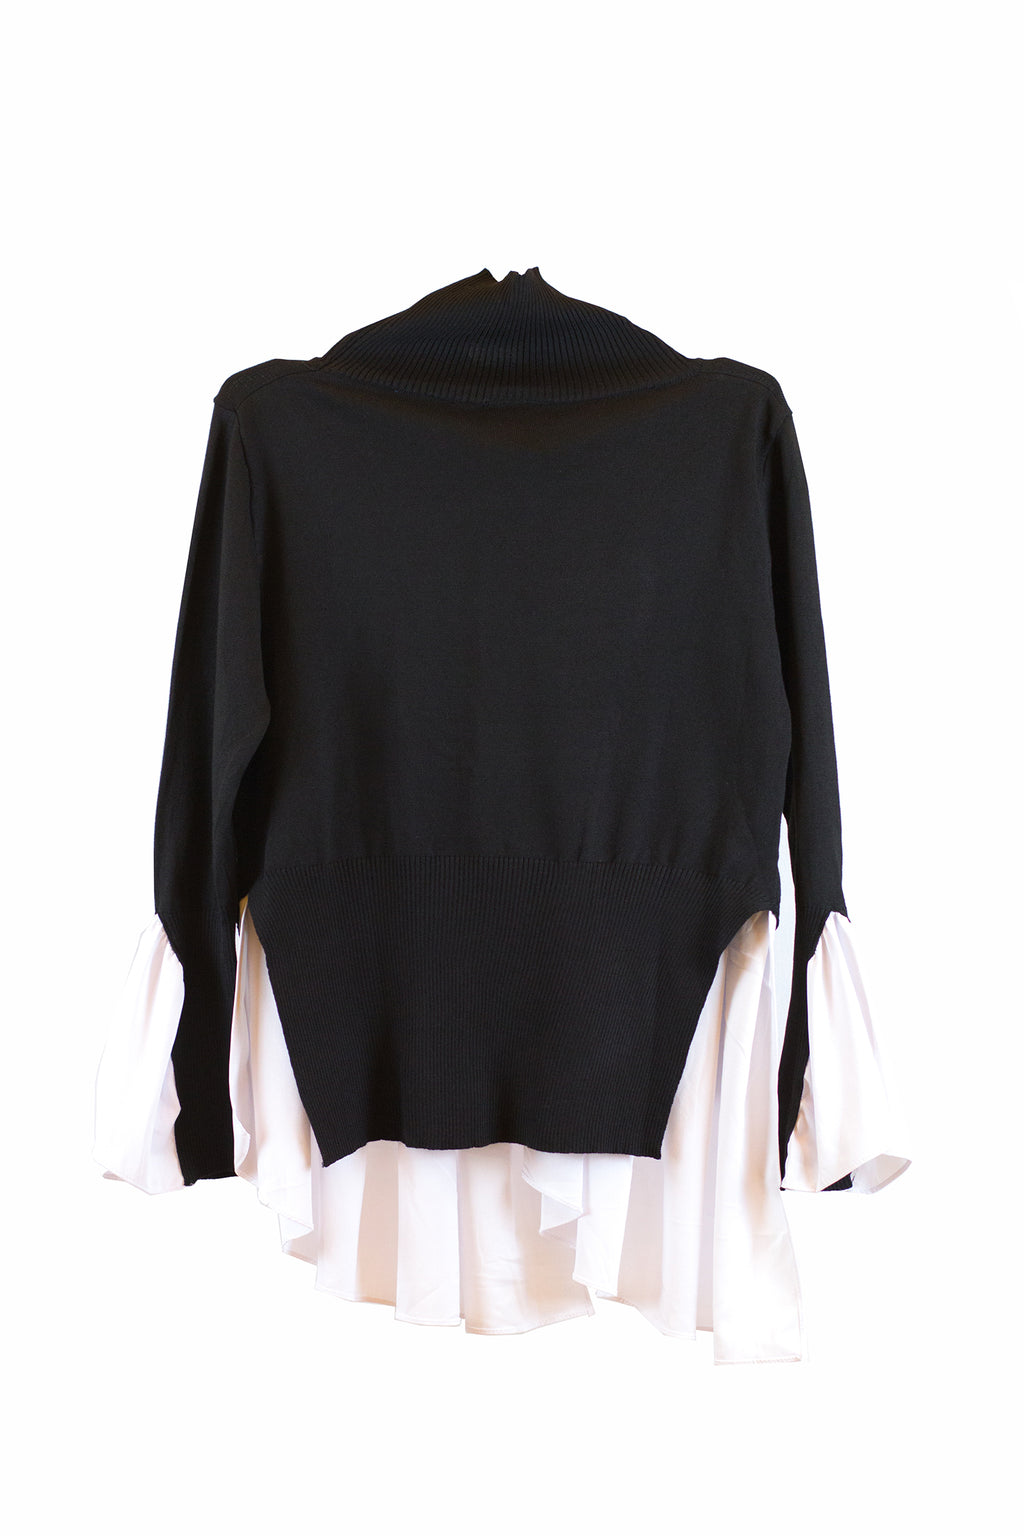 Black long sleeve with white design at the arm & bottom